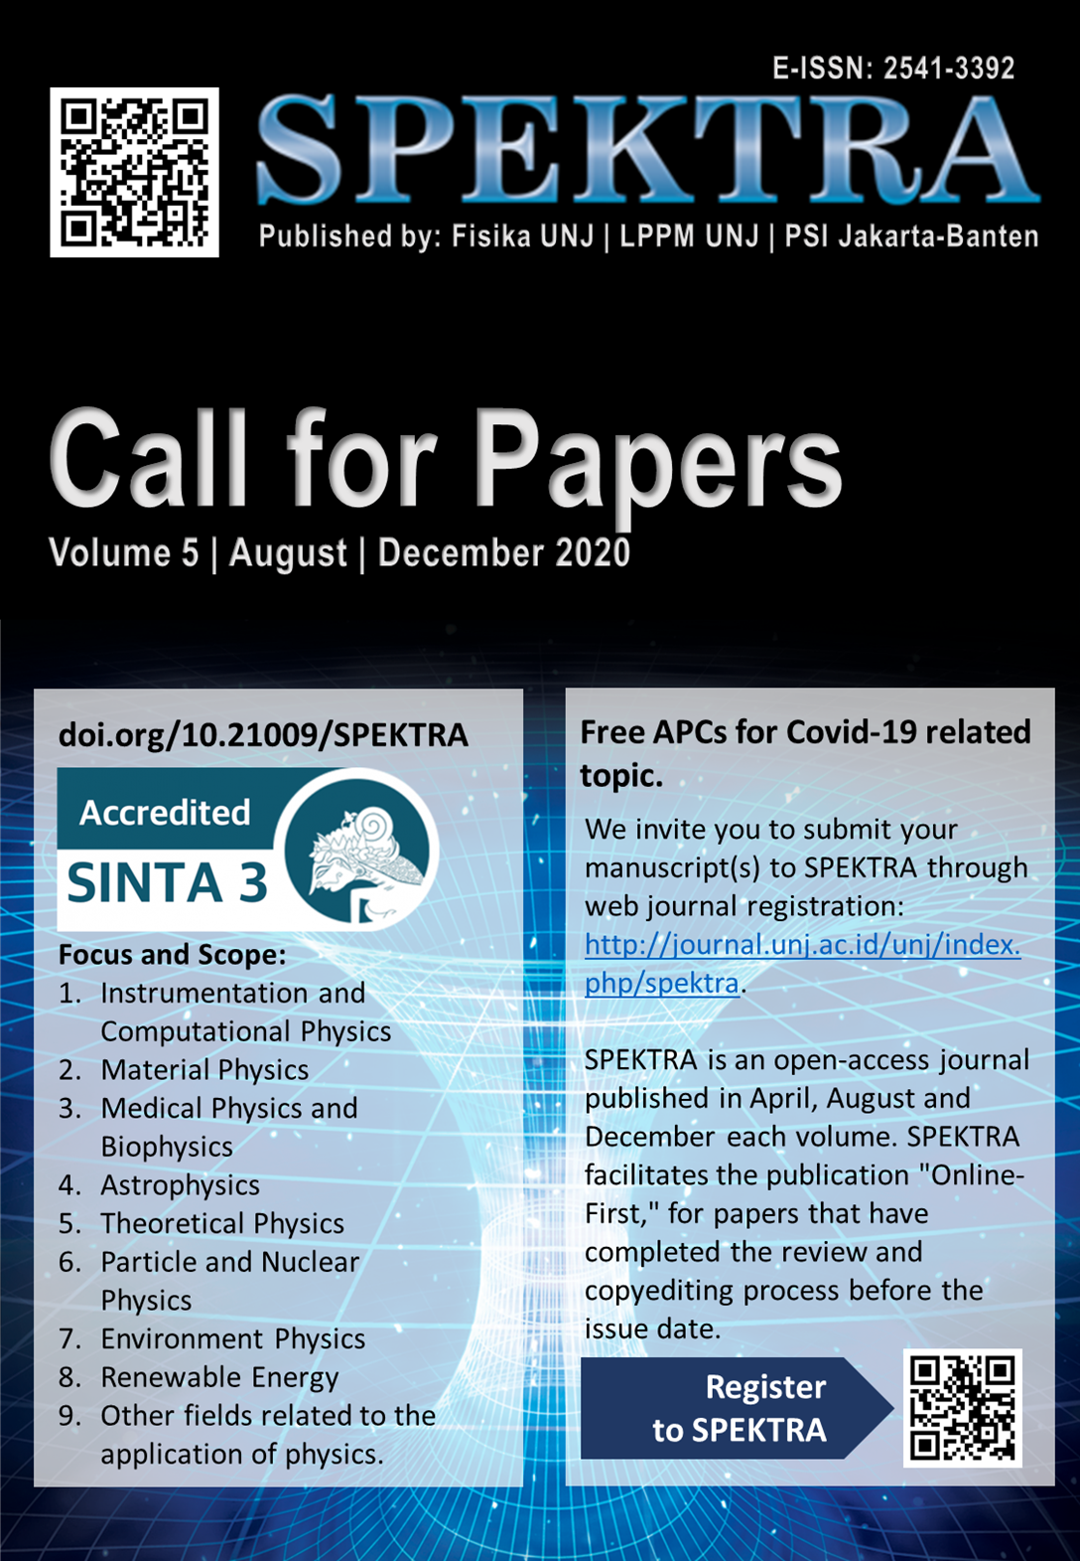 Call_for_Paper-Spektra-vol5-august.png